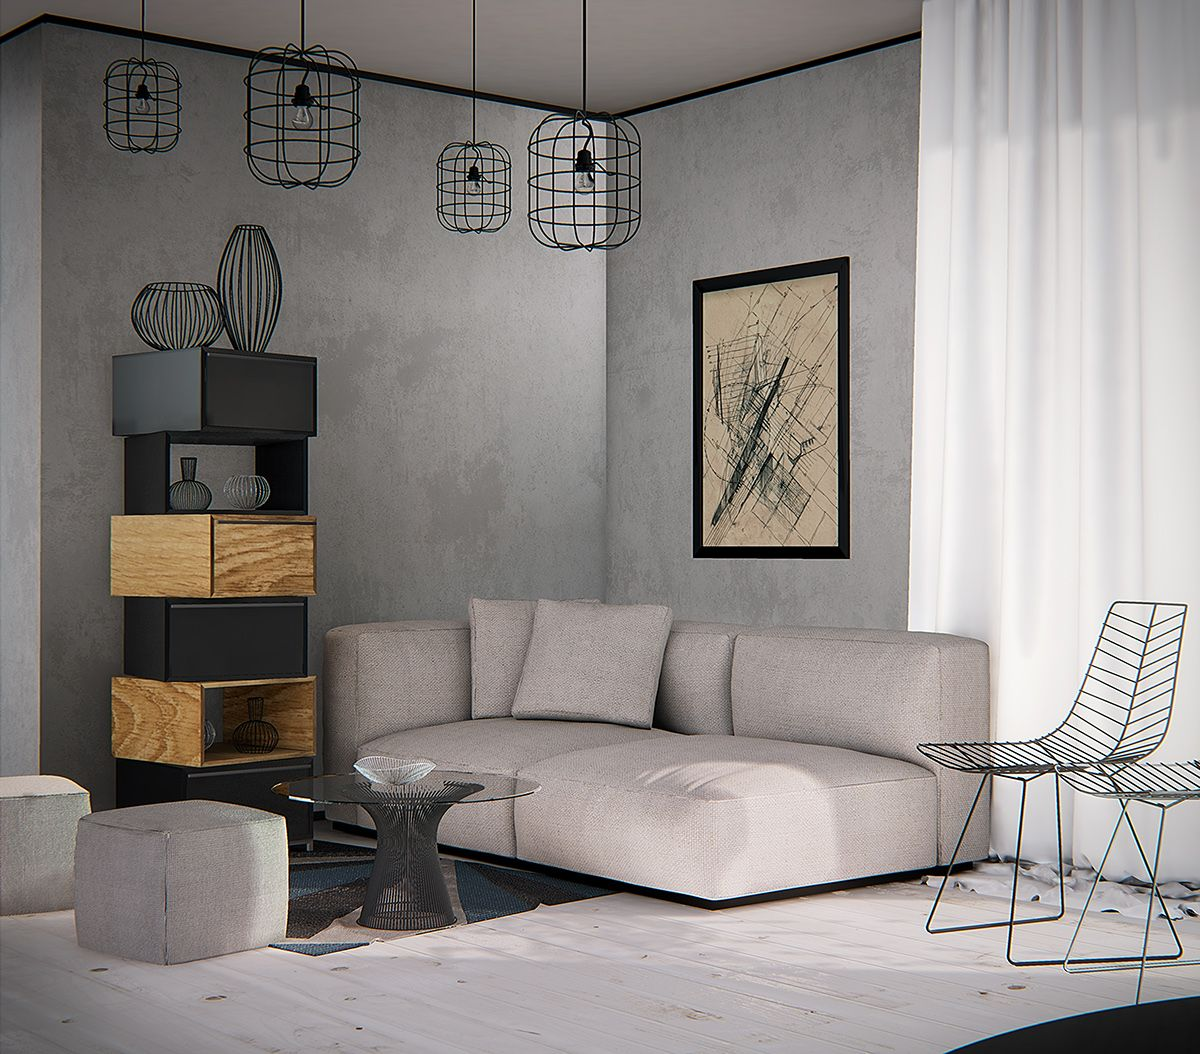 Interior Render With Unreal Engine 4 On Behance Interior Interior Design Interior Rendering